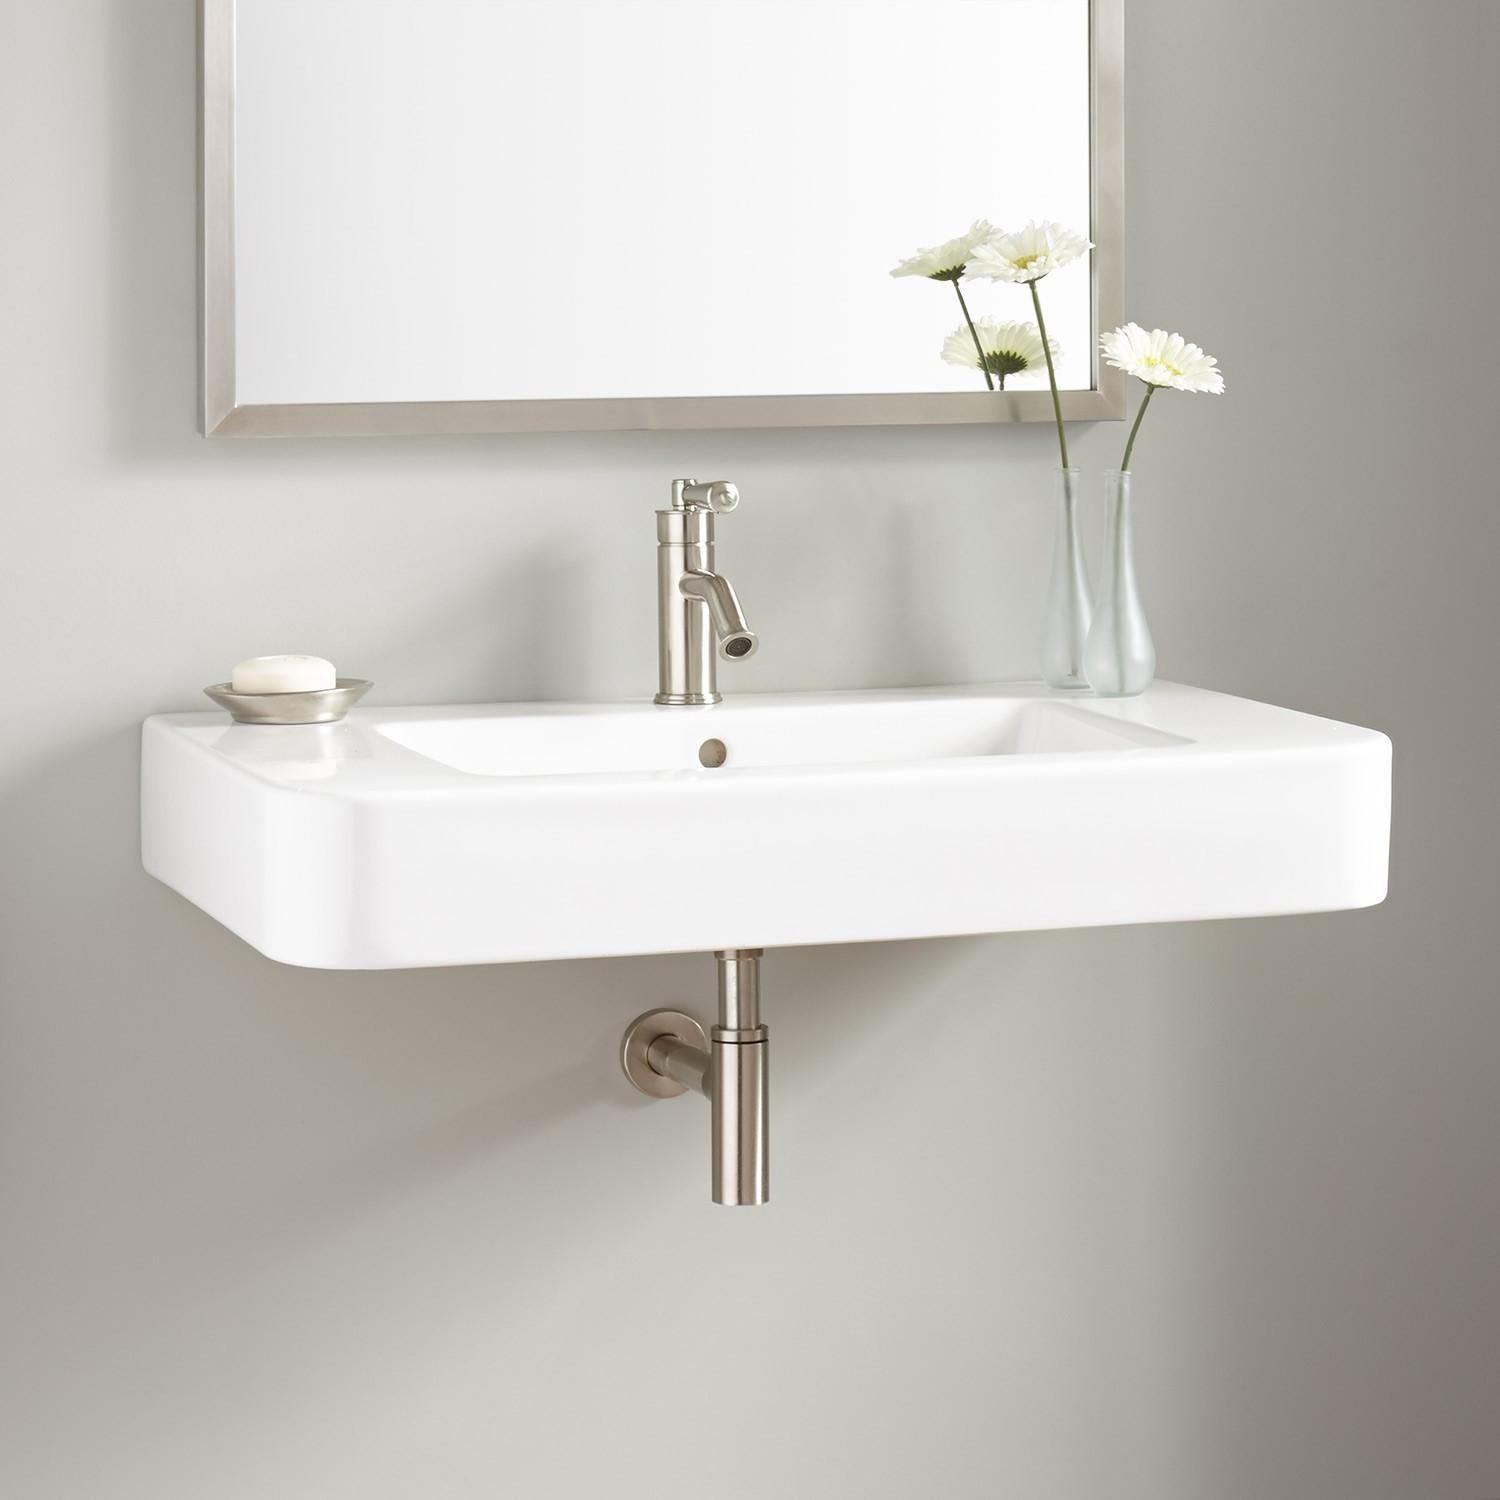 Burleson Porcelain Wall Mount Sink Sinks